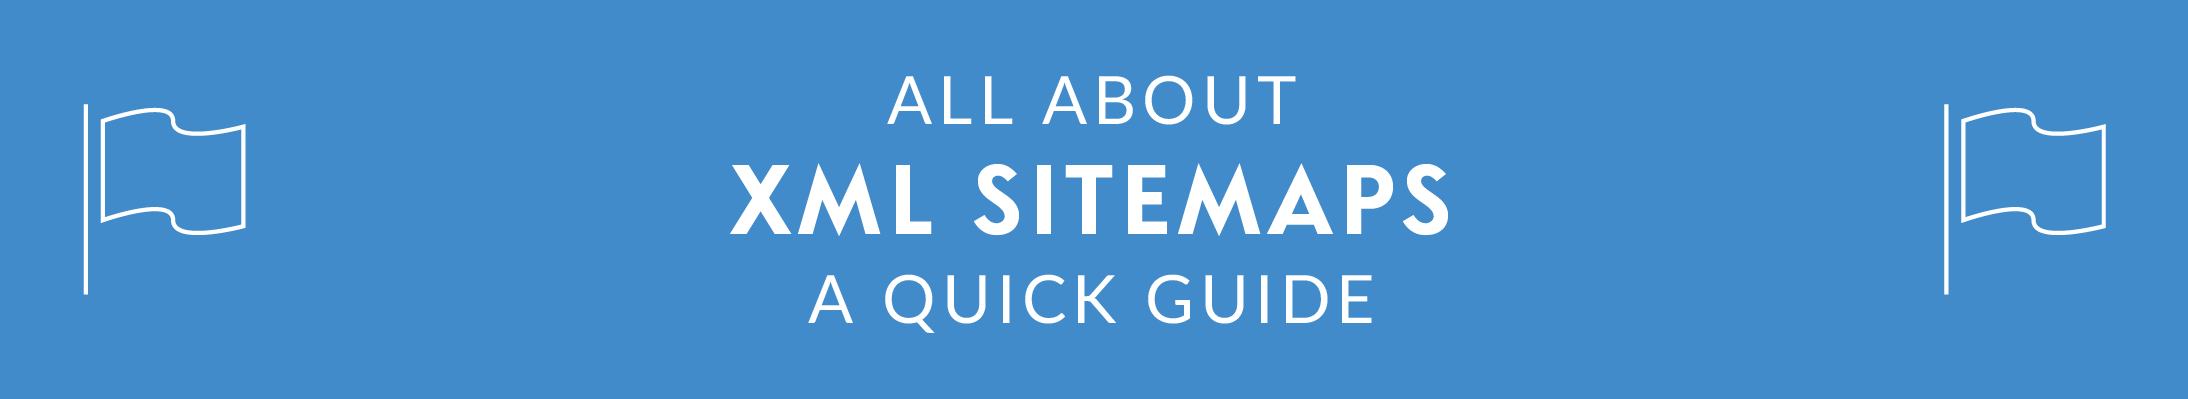 what is an xml sitemap